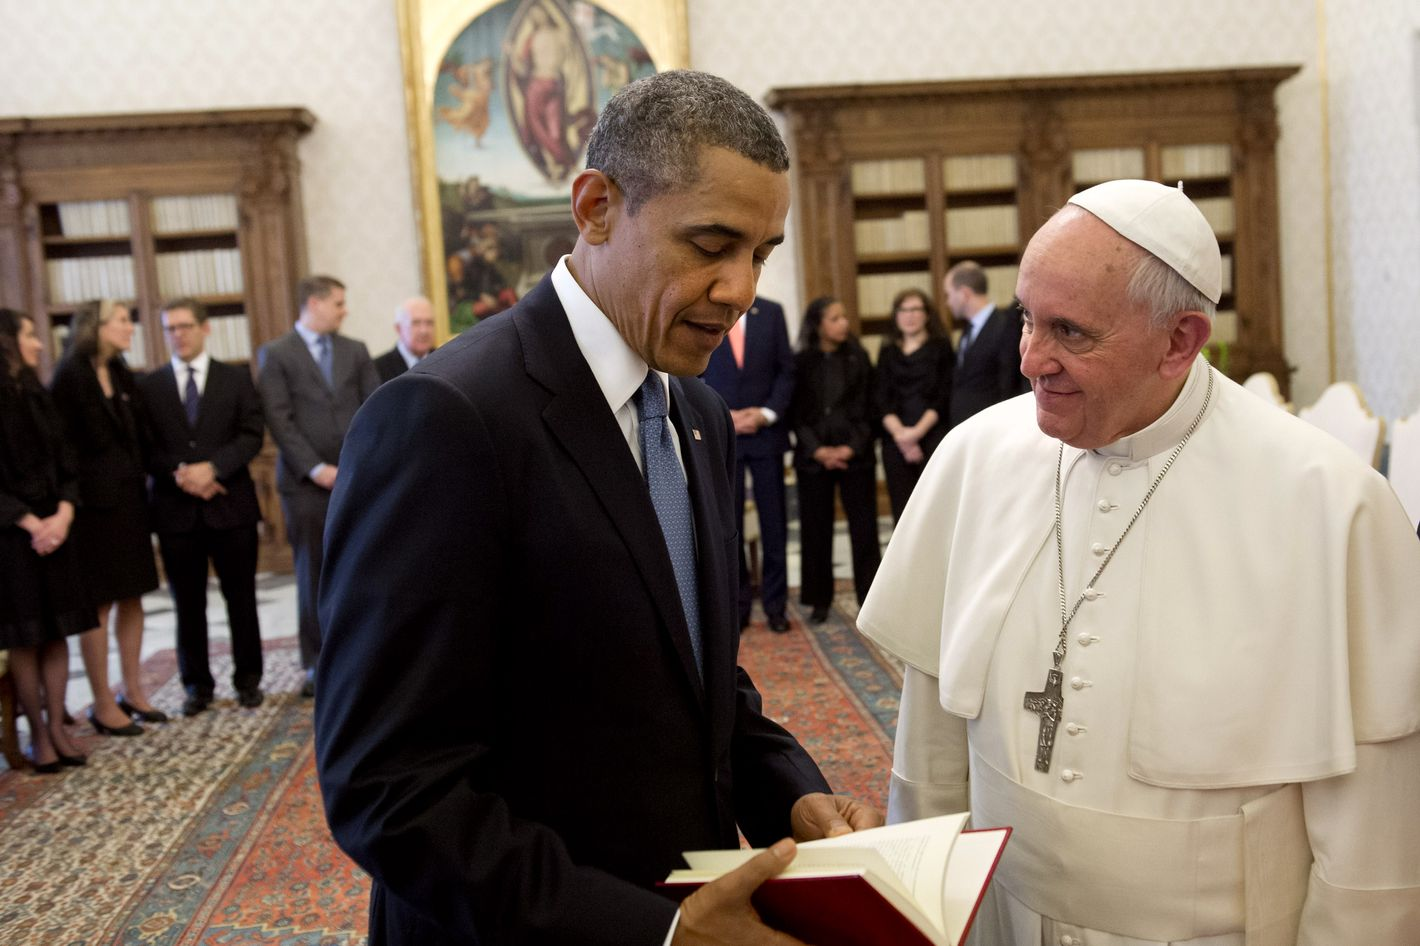 Pope Francis (R) presents a book to US President Barack Obama as they exchange gifts during a private audience on March 27, 2014 at the Vatican. The meeting at the Vatican comes as a welcome rest-stop for Obama during a six-day European tour dominated by the crisis over Crimea, and the US leader will doubtless be hoping some of the pope's overwhelming popularity will rub off on him.    AFP PHOTO / SAUL LOEB